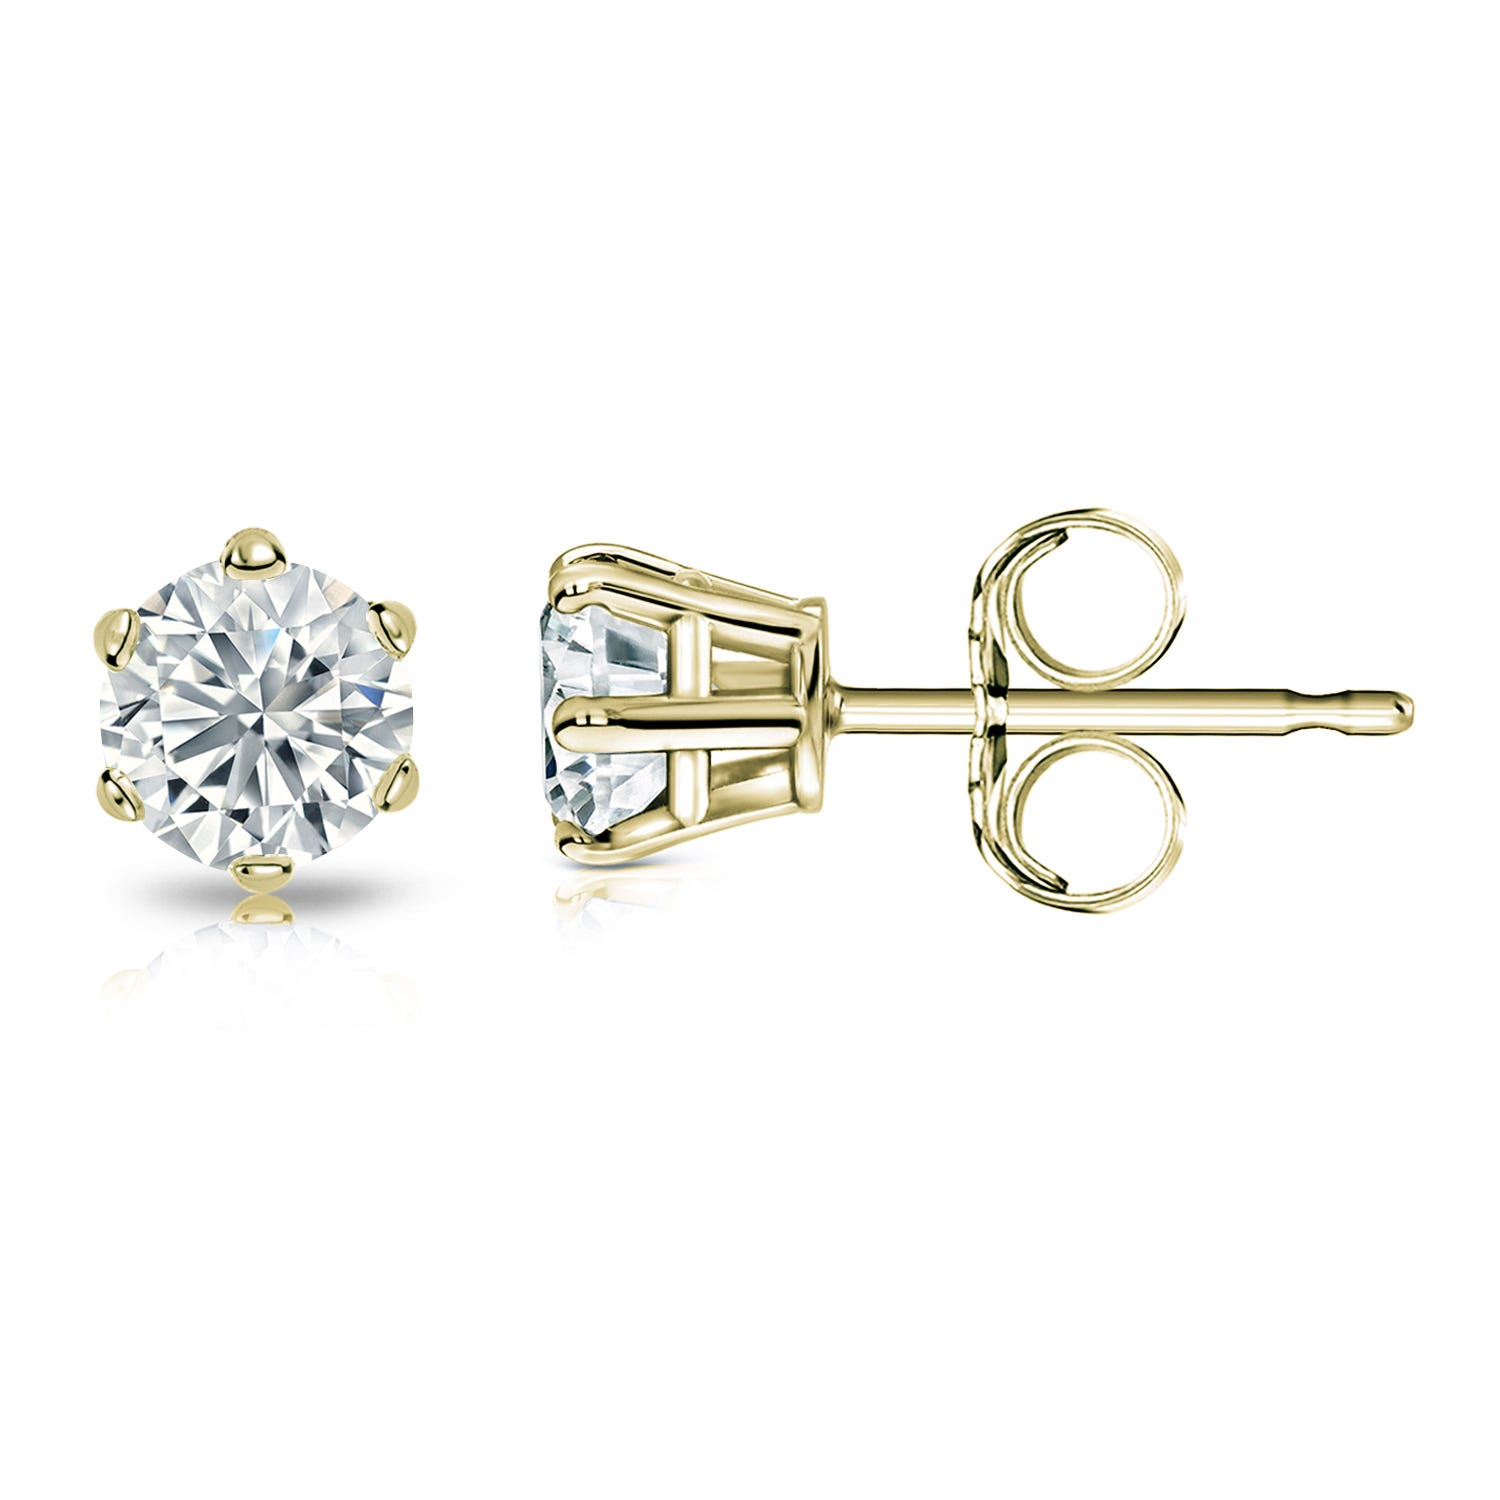 Round Diamond 3/4ctw. (IJ-I1) Solitaire Stud 6-Prong Earrings in 14K Yellow Gold